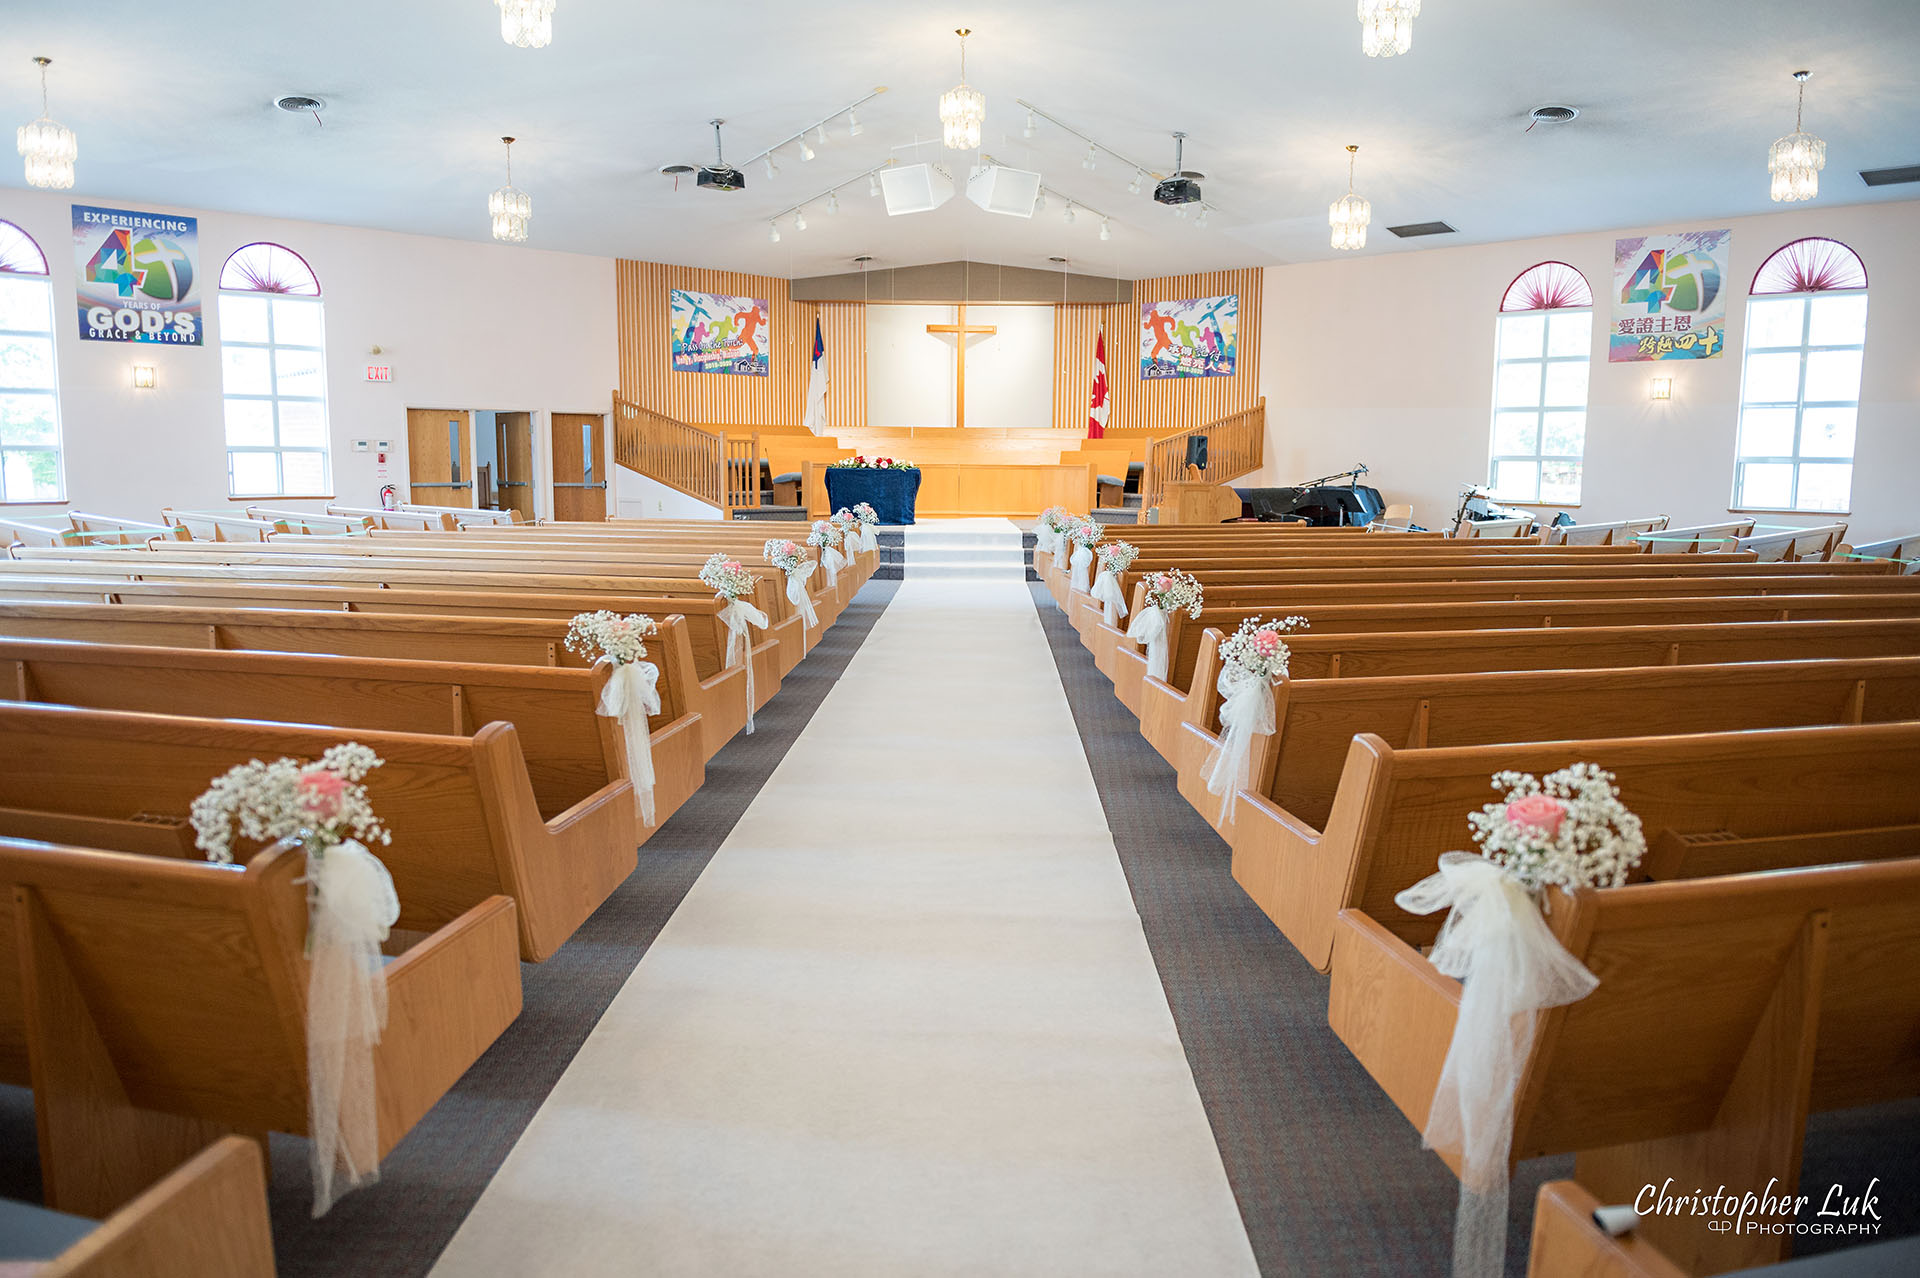 Christopher Luk Toronto Wedding Photographer Bridle Trail Baptist Church Unionville Main Street Crystal Fountain Event Venue Ceremony Location Interior Pews Rows Flowers Little White Baby's Breath Rose Pink Drapery Fabric Flower Bell by Masami Decor